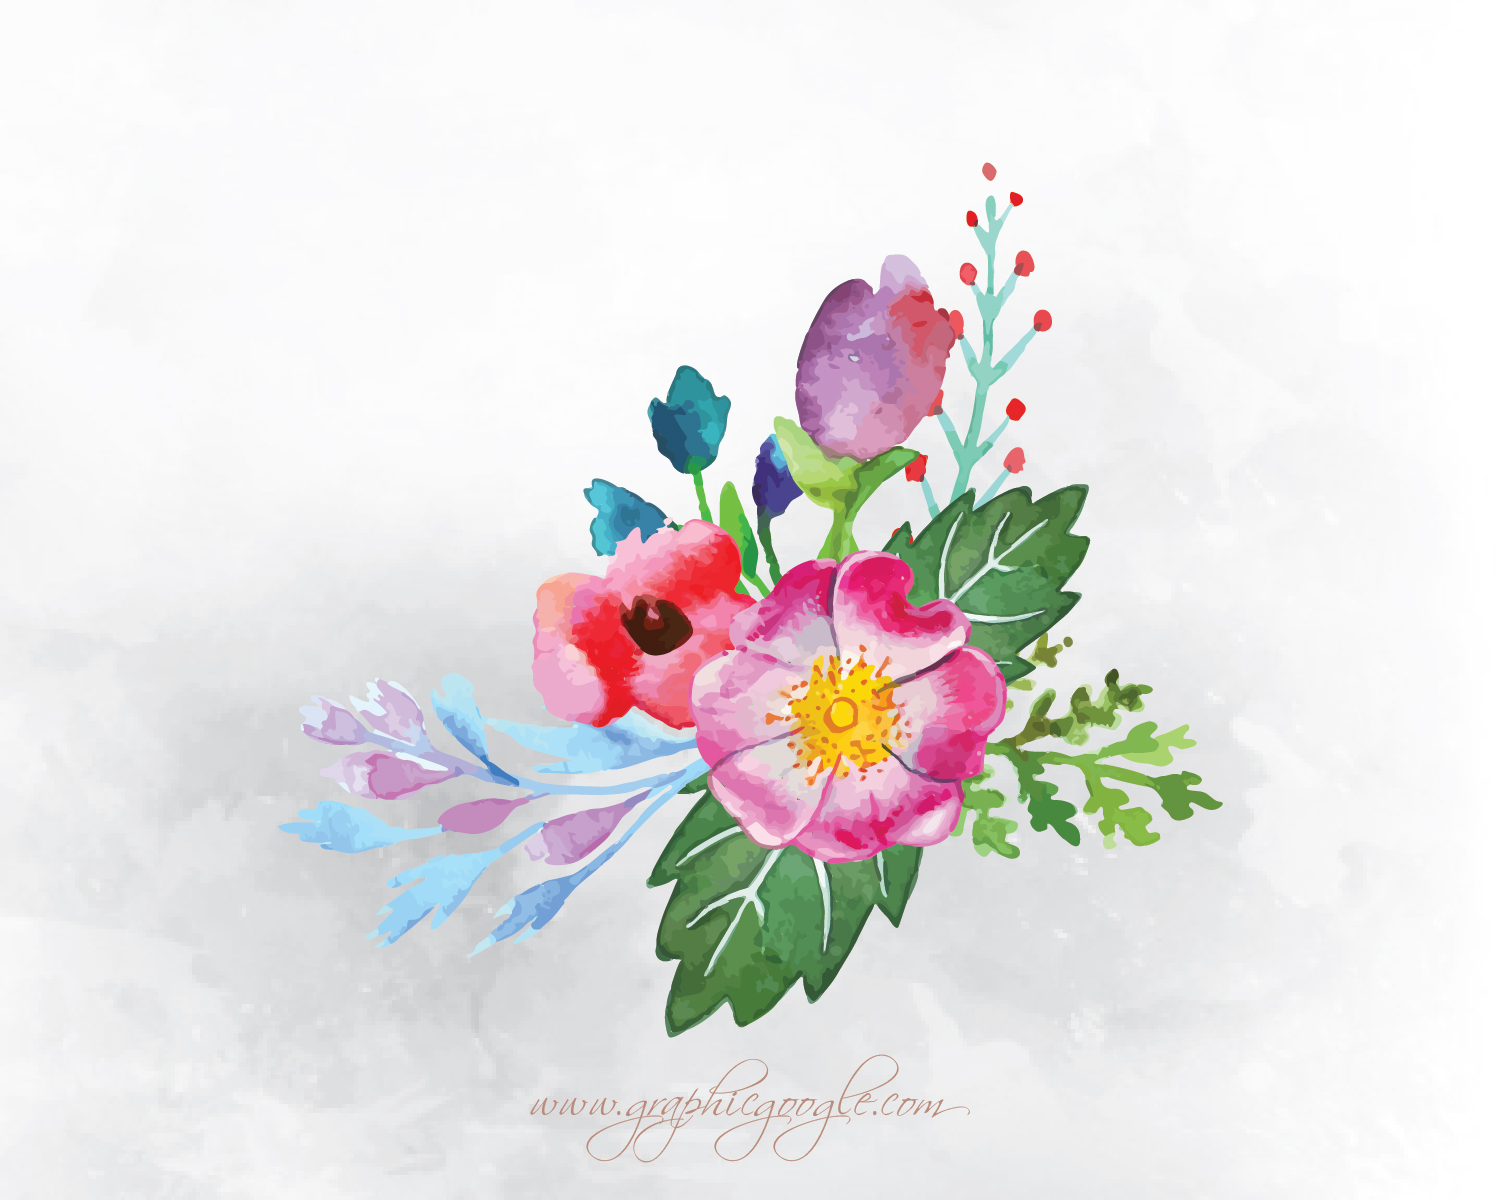 9 free watercolor flower vectors for designersgraphic